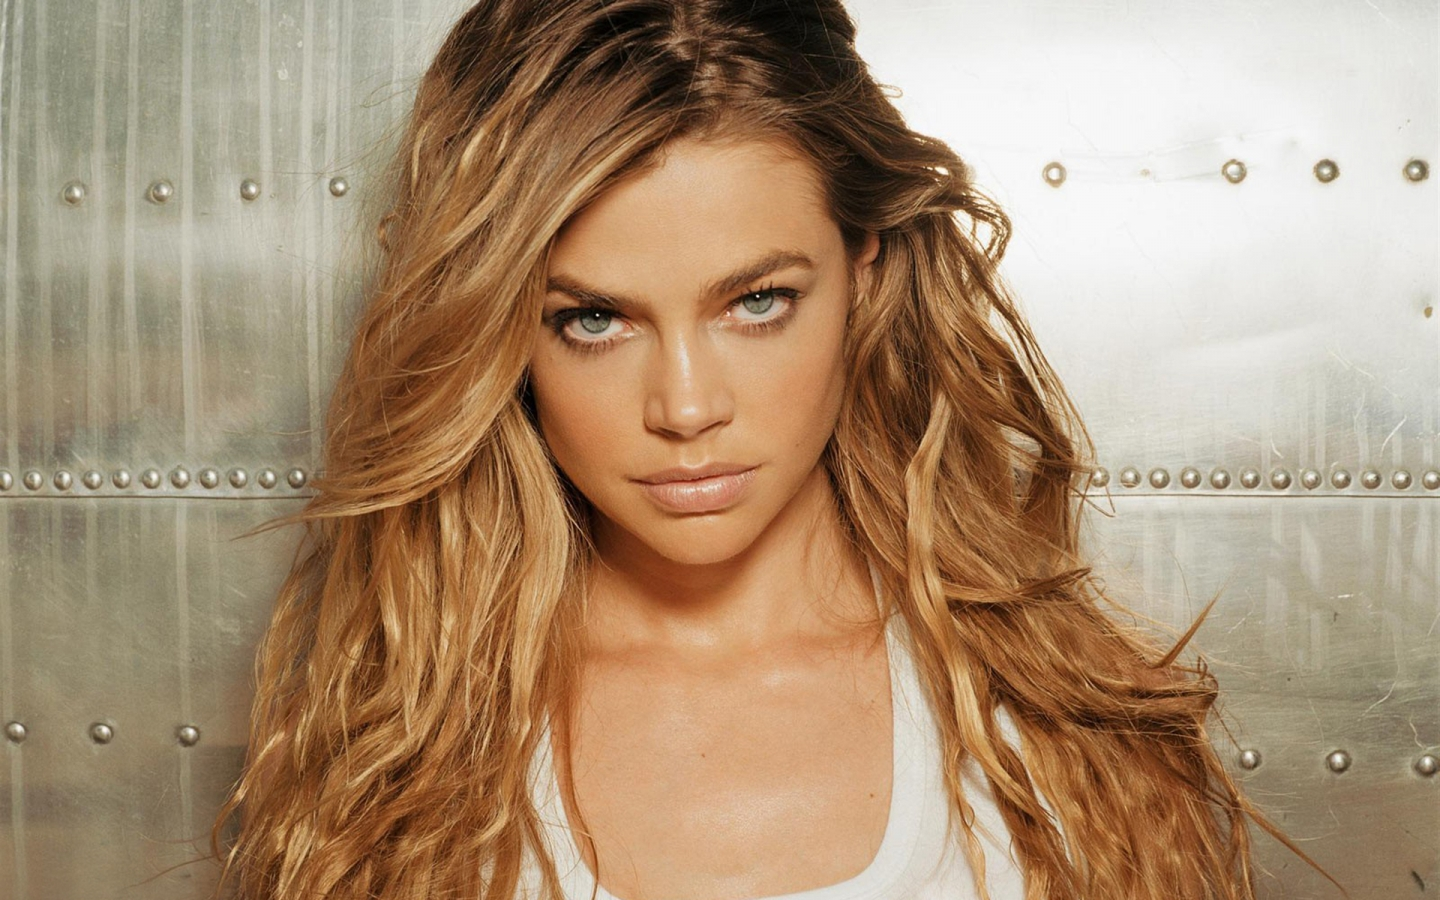 Denise Richards Serious for 1440 x 900 widescreen resolution